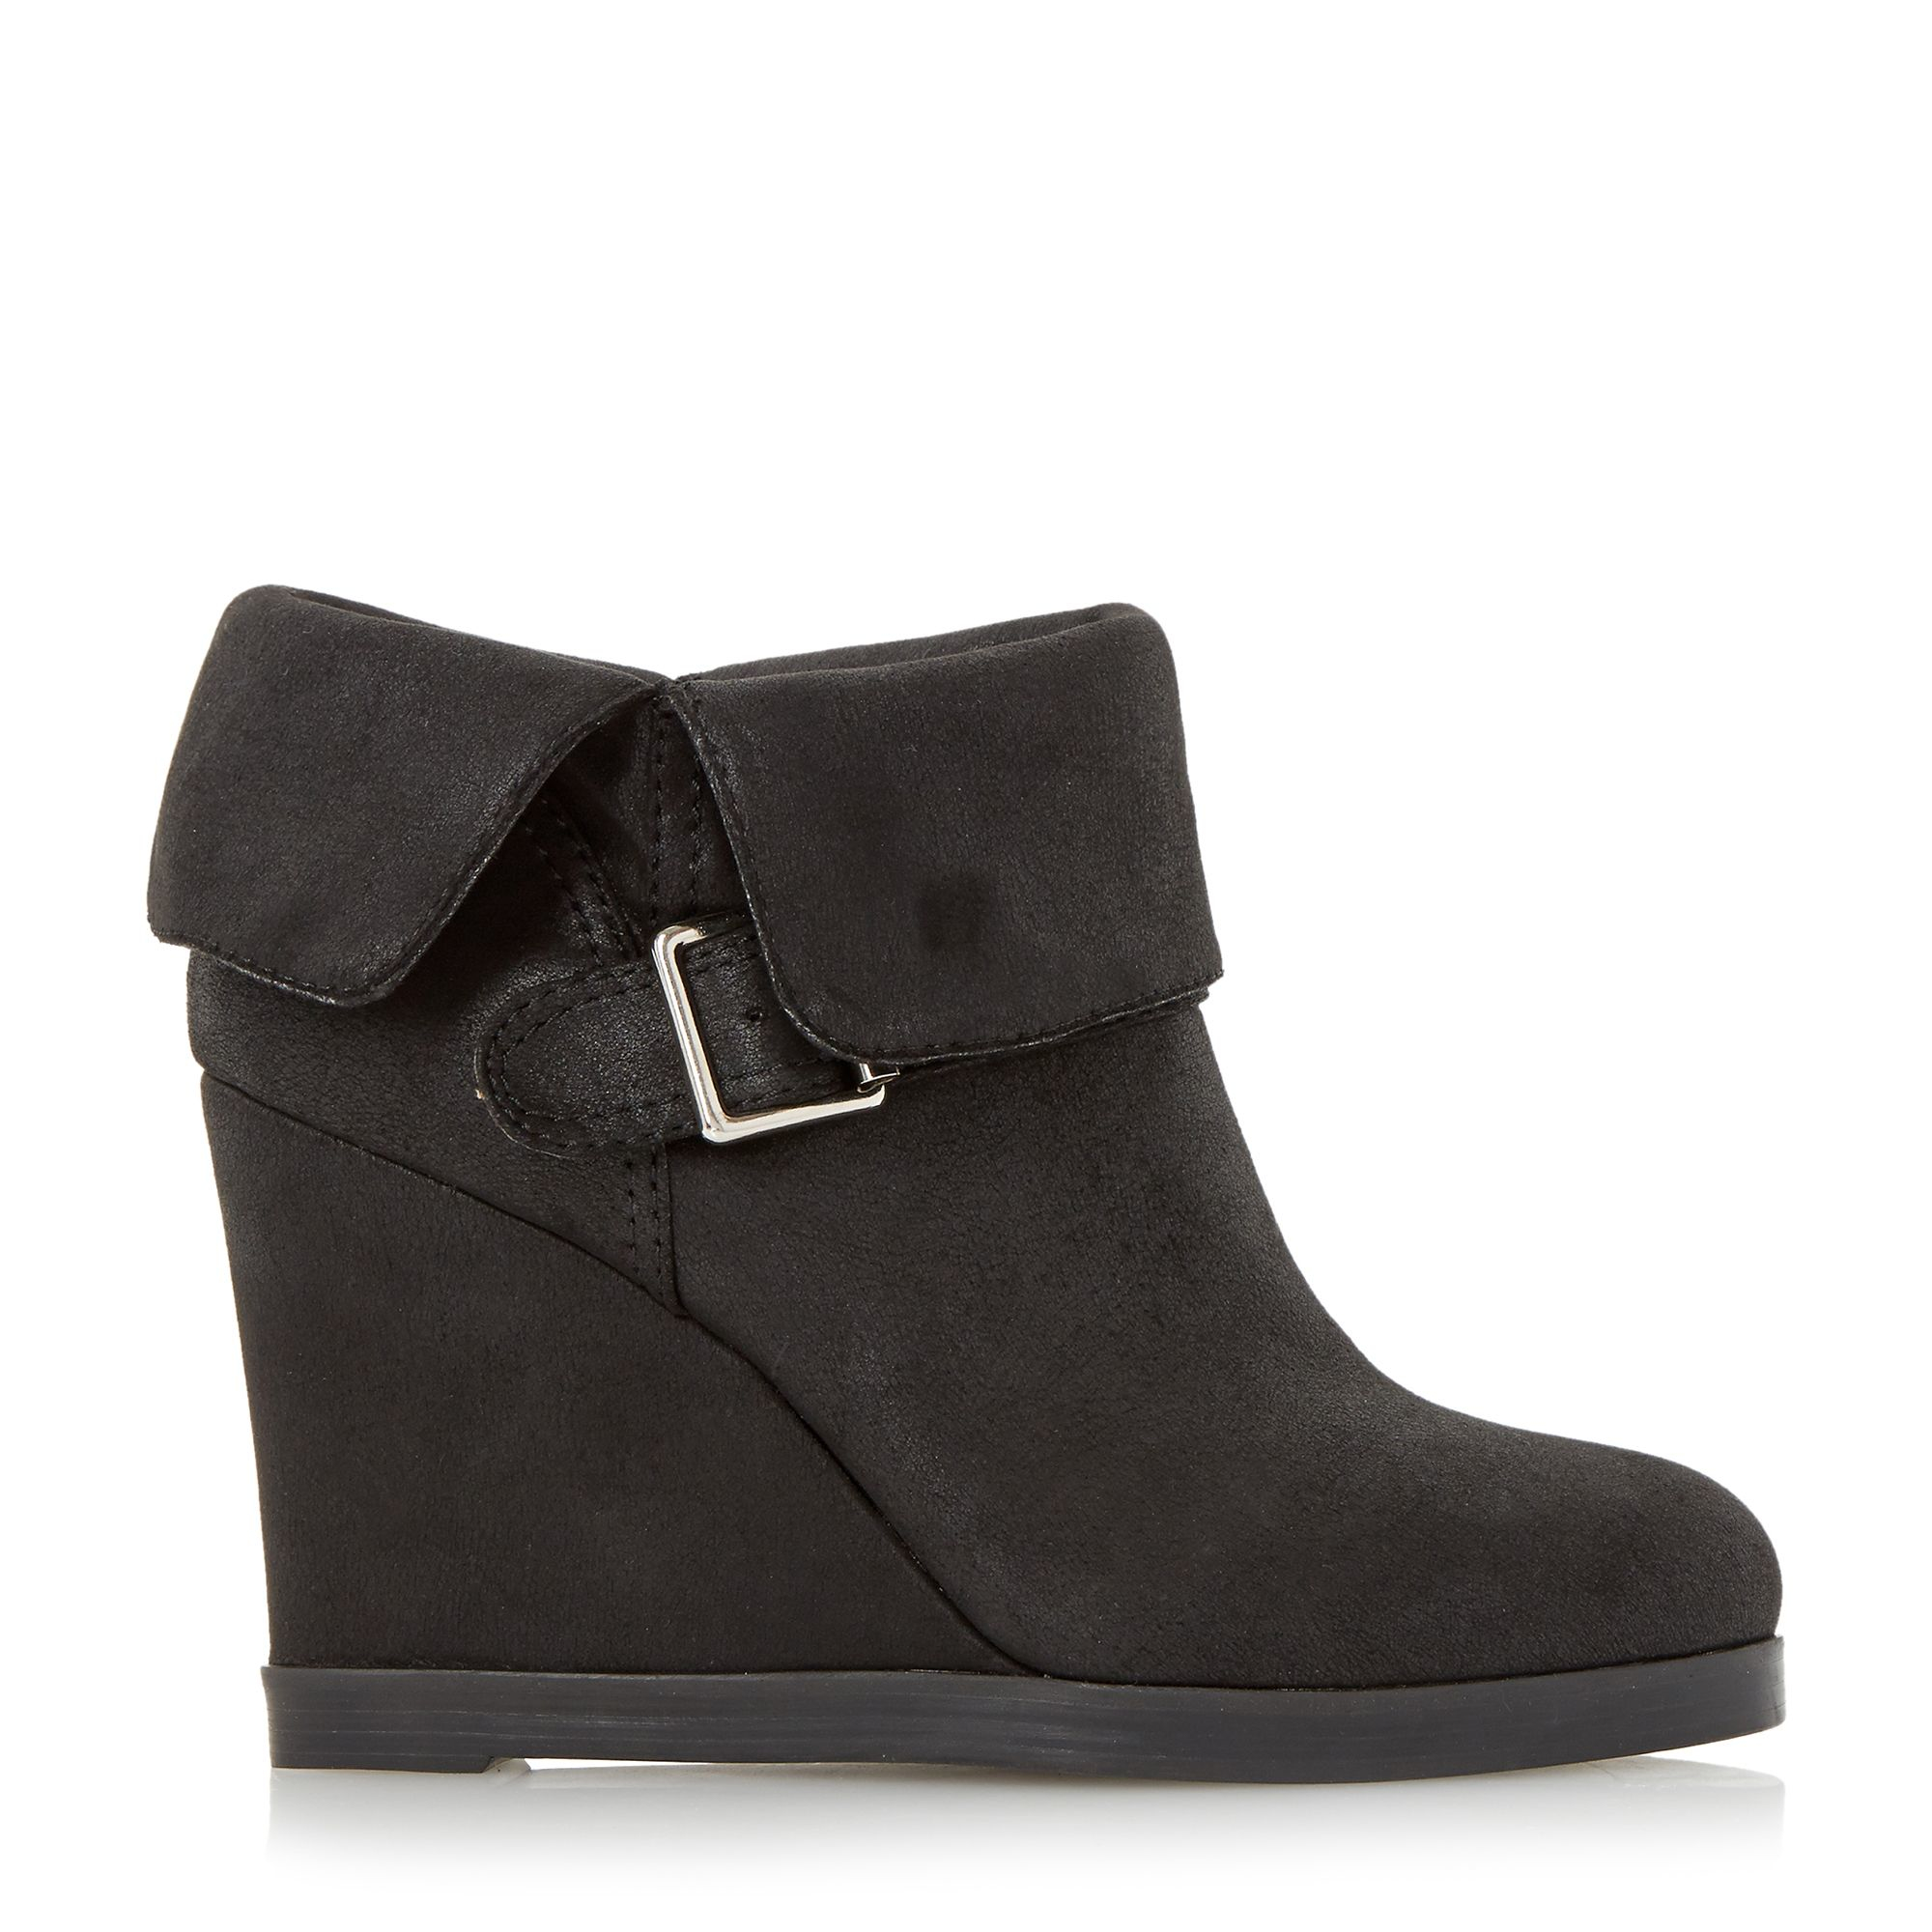 Dune Pindar Fold Down Wedge Heel Ankle Boots in Black | Lyst